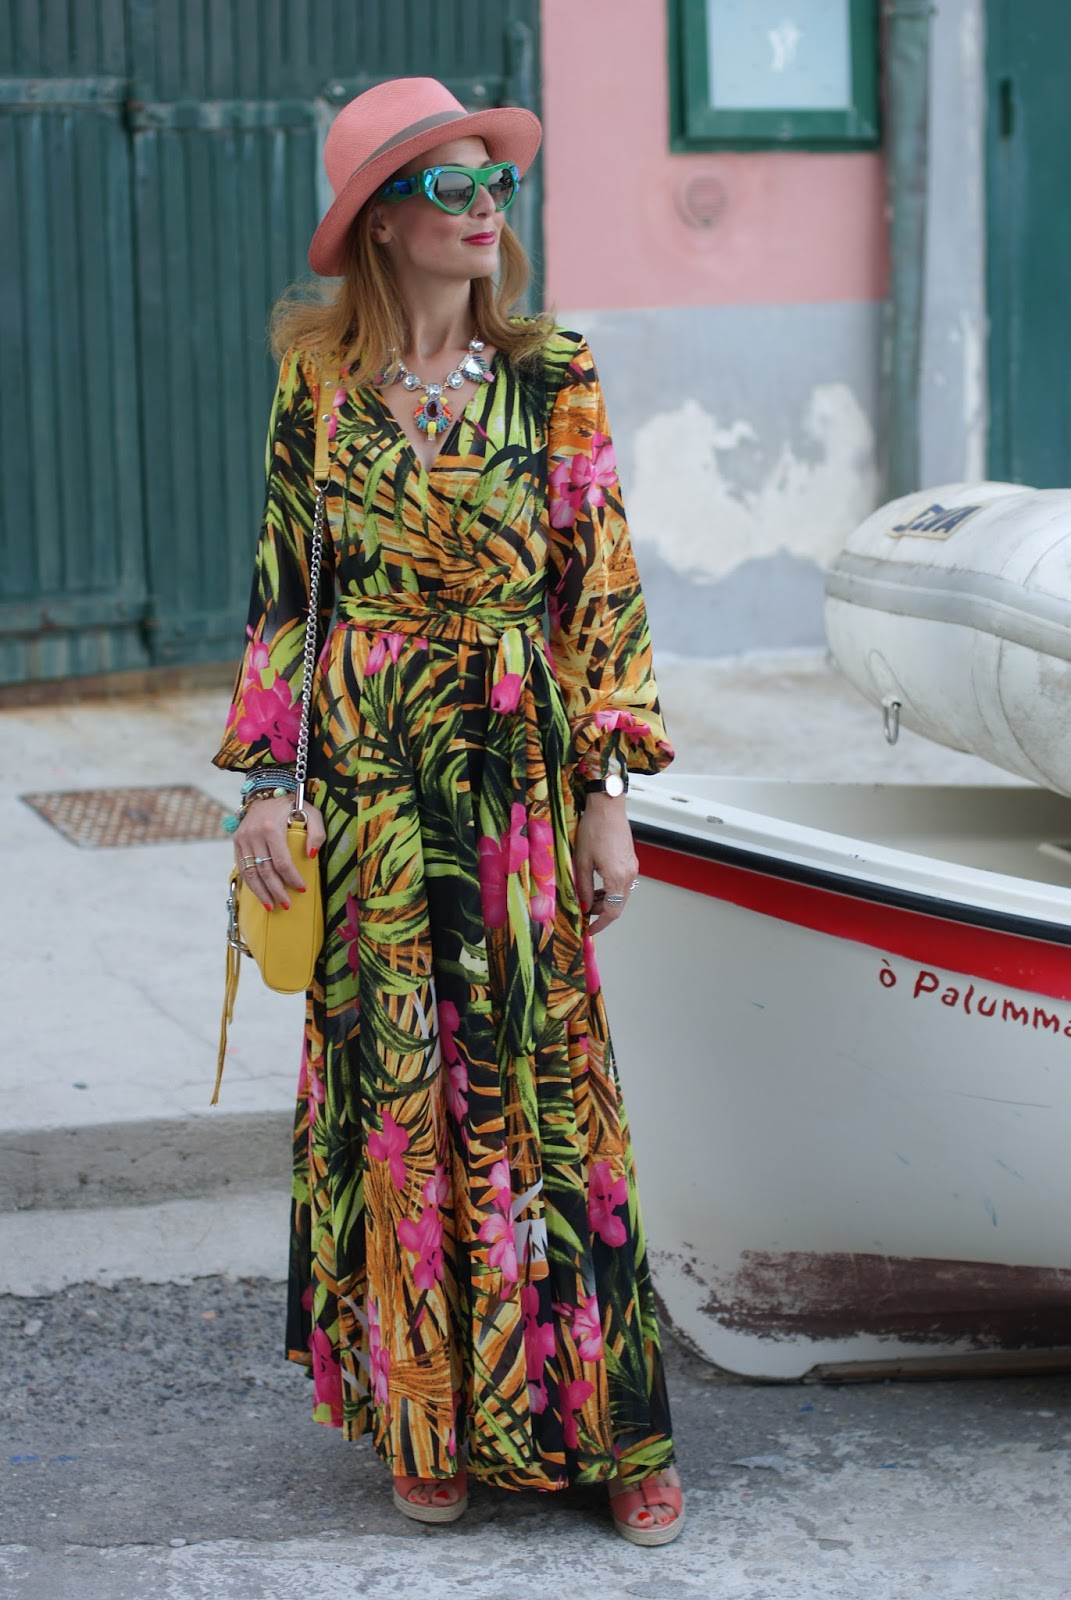 walktrendy tropical print chiffon maxi dress, prada voice sunglasses for a summer boho style on Fashion and Cookies fashion blog, fashion blogger style